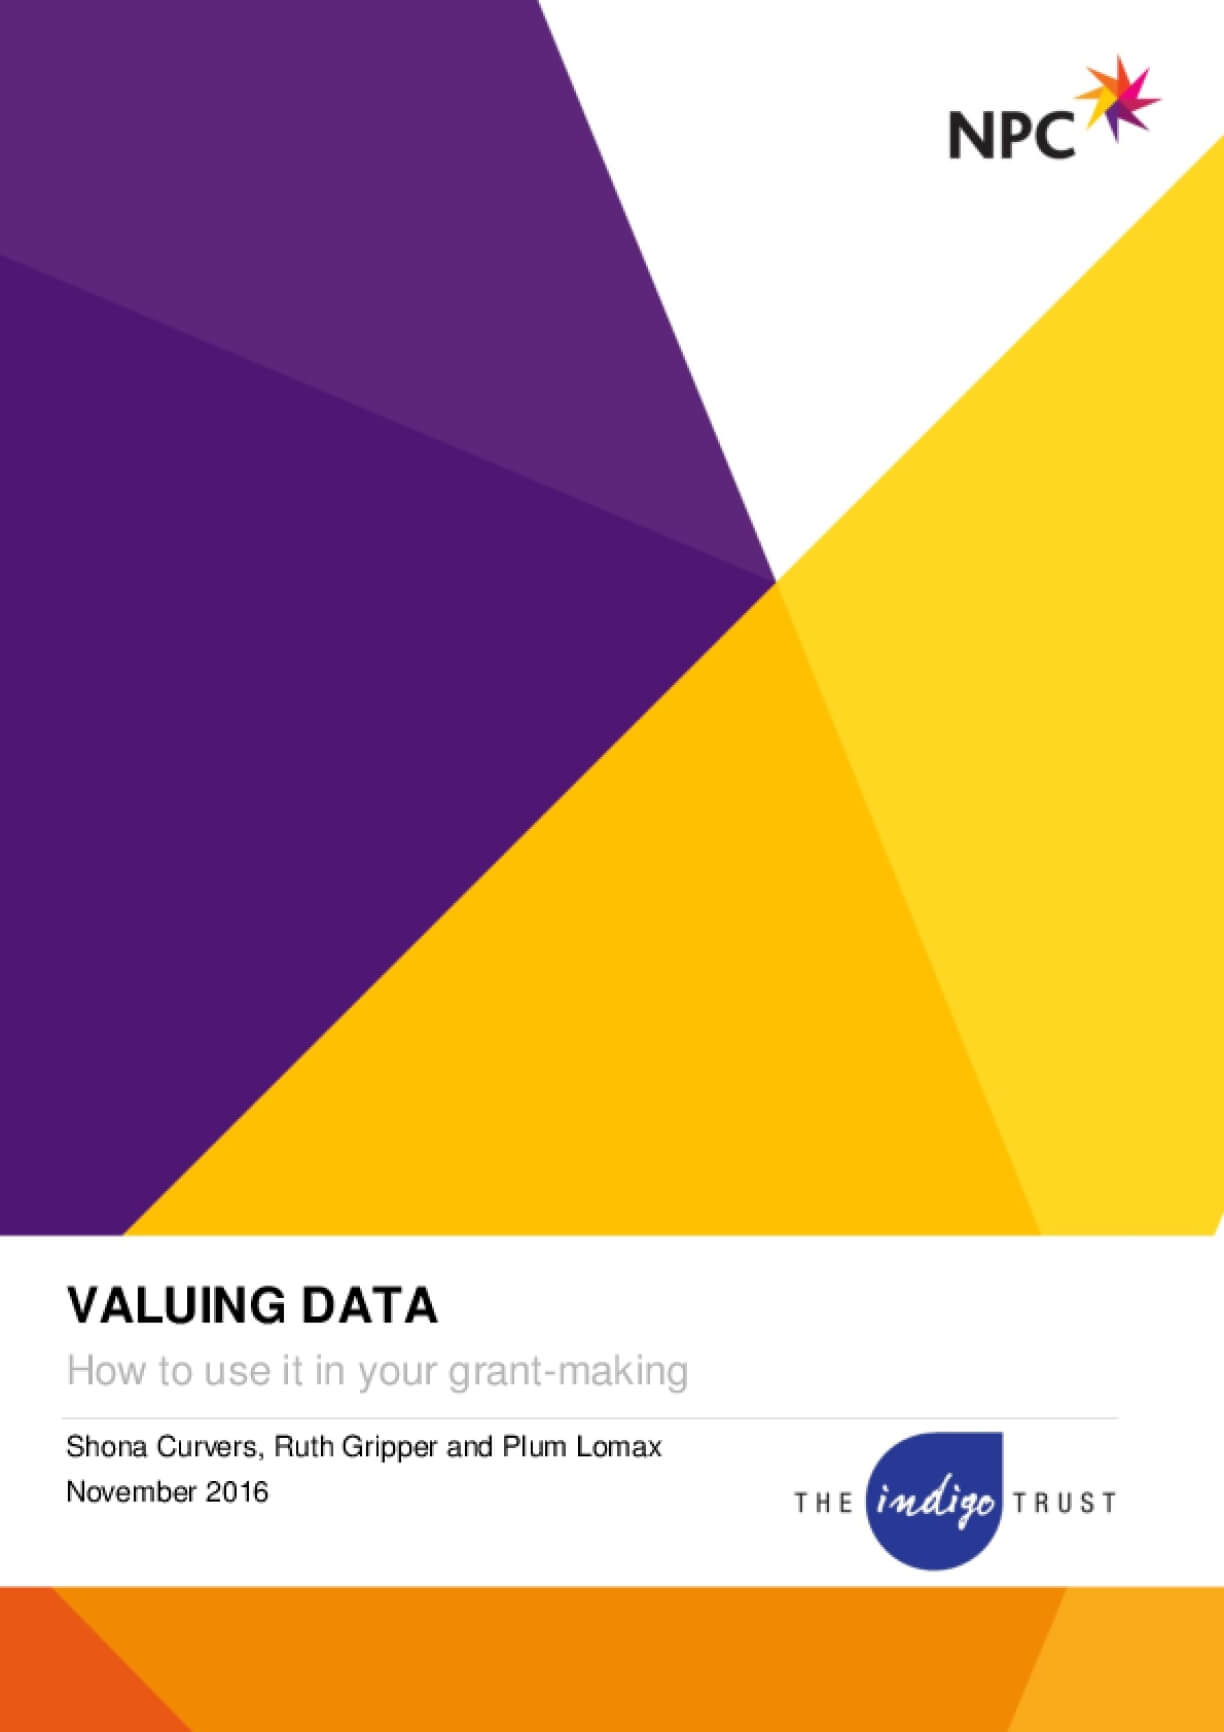 Valuing Data: How to Use It in Your Grant-Making